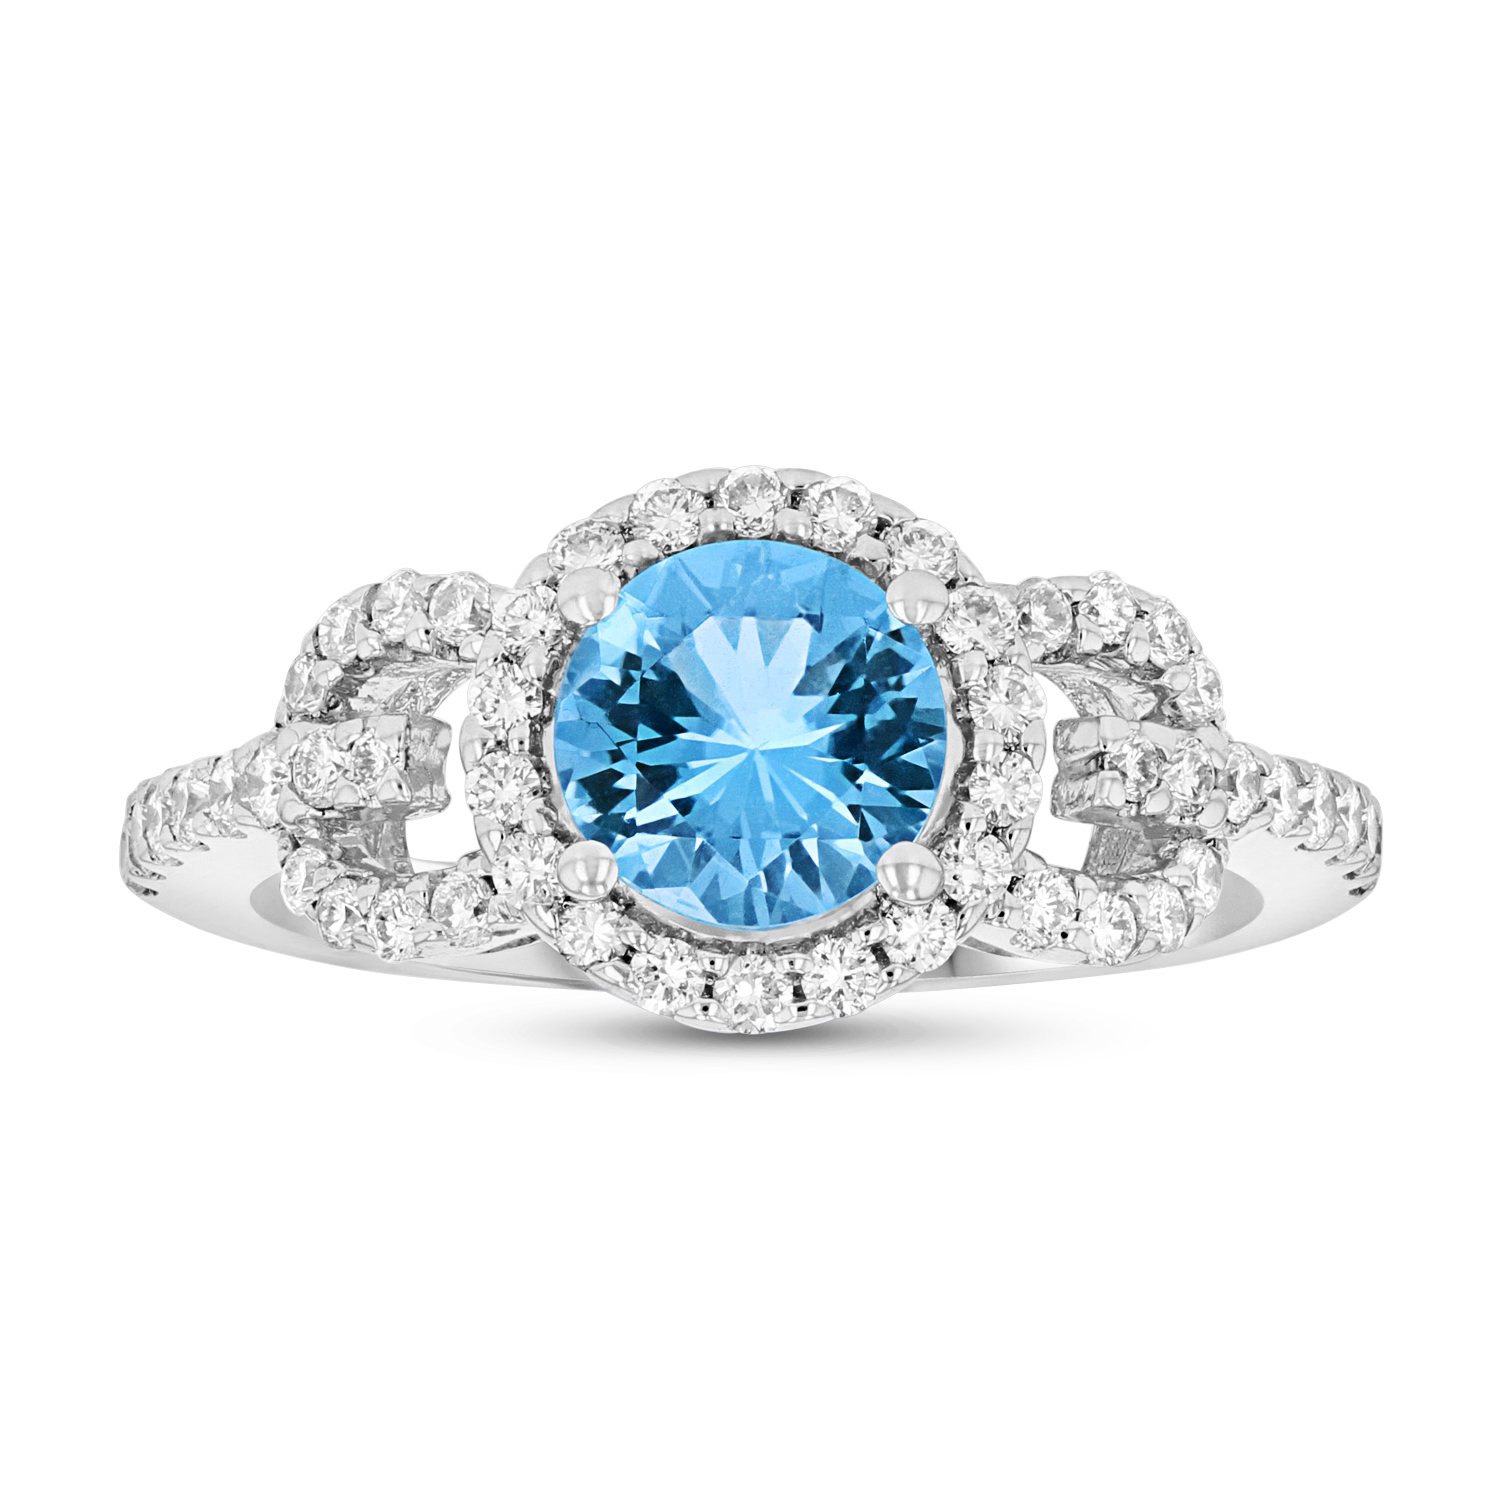 View Diamond and Blue Topaz Ring in 14k White Gold